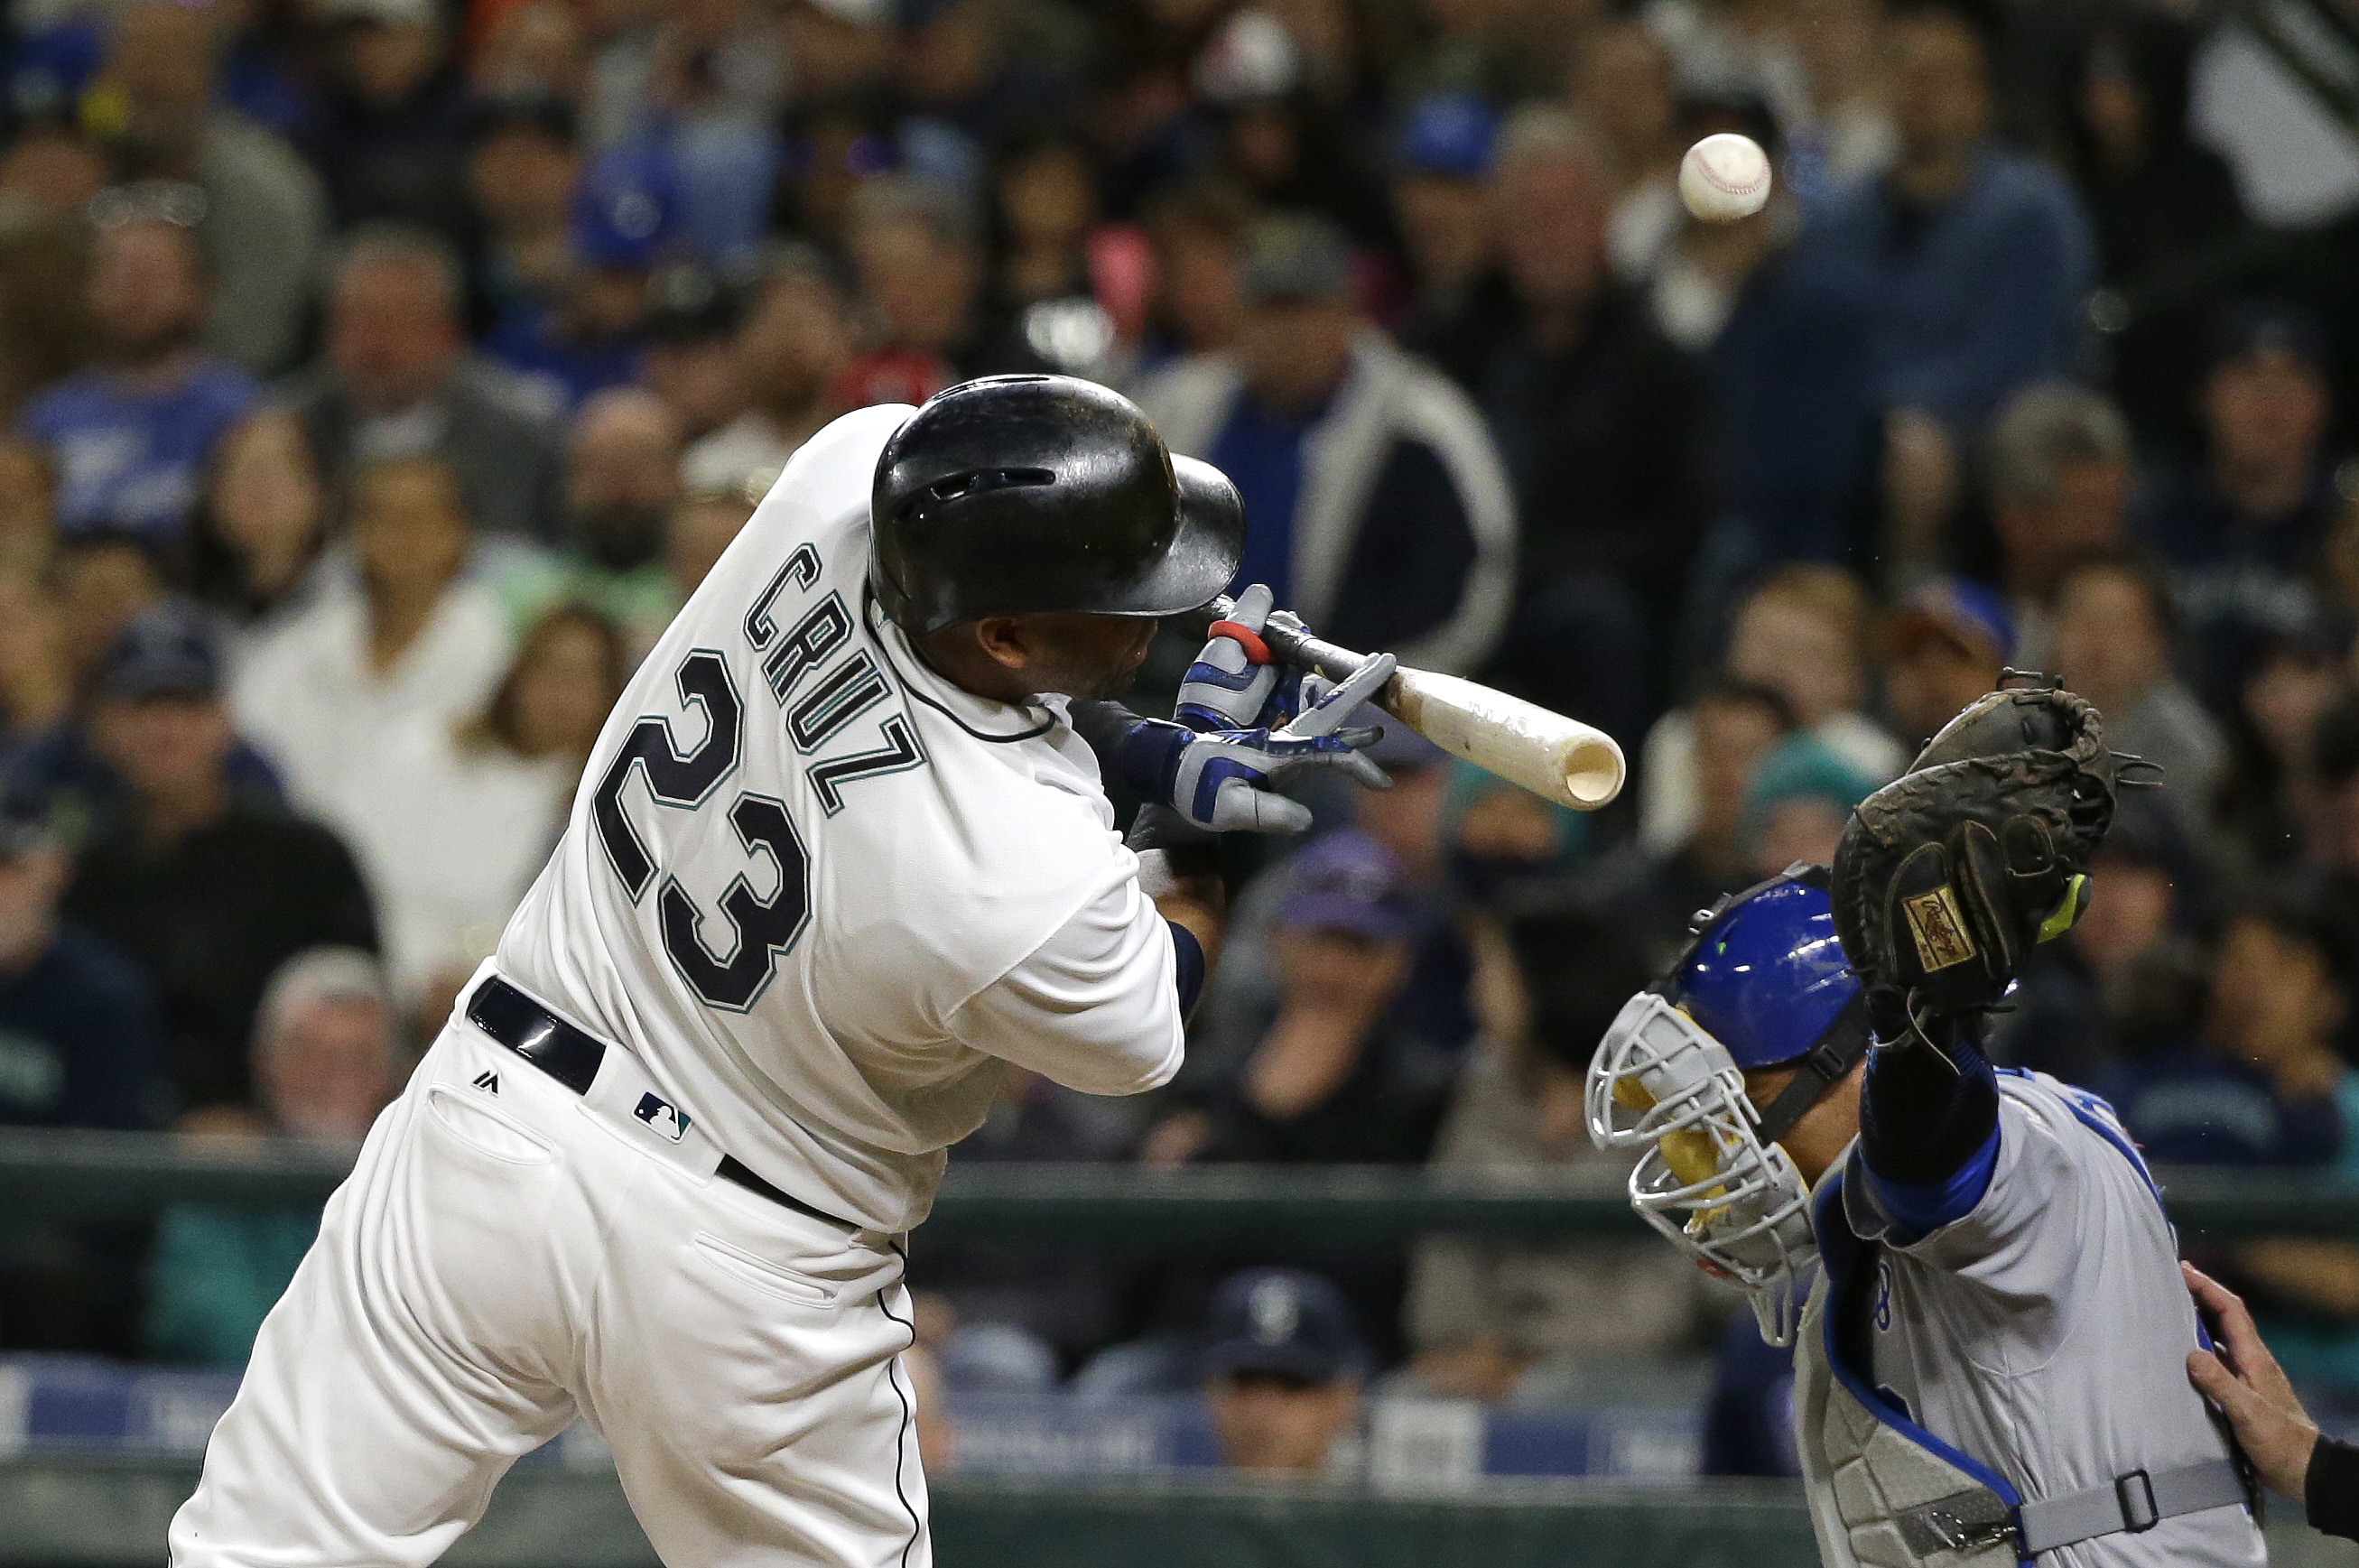 Seattle Mariners Nelson Cruz (23) is hit by a pitch thrown by Kansas City Royals' Dillon Gee during the sixth inning of a baseball game, Saturday, April 30, 2016, in Seattle. (AP Photo/Ted S. Warren)